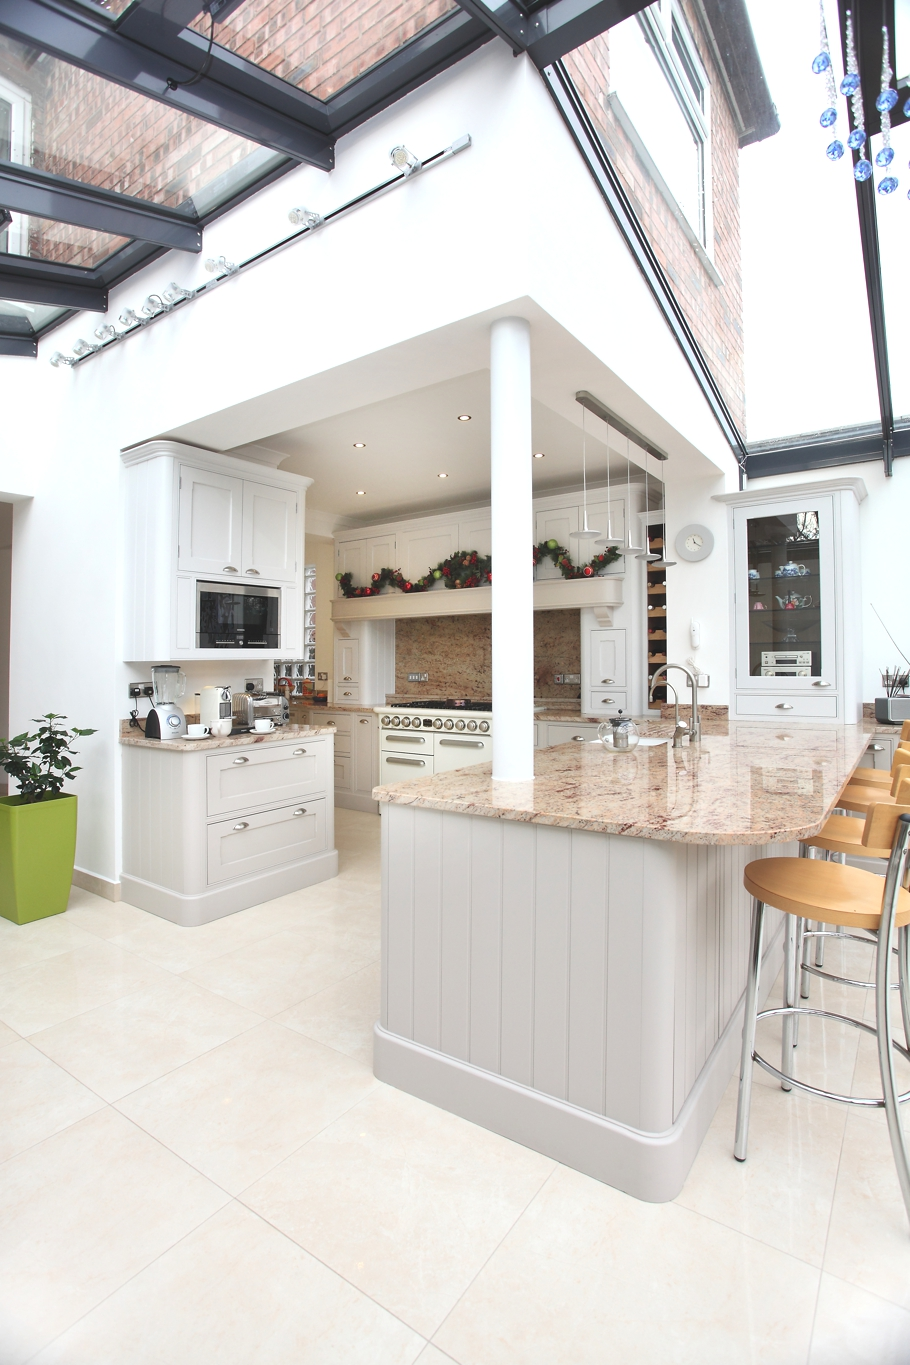 Contemporary conservatory ideas open plan extension for for Kitchen extension ideas uk